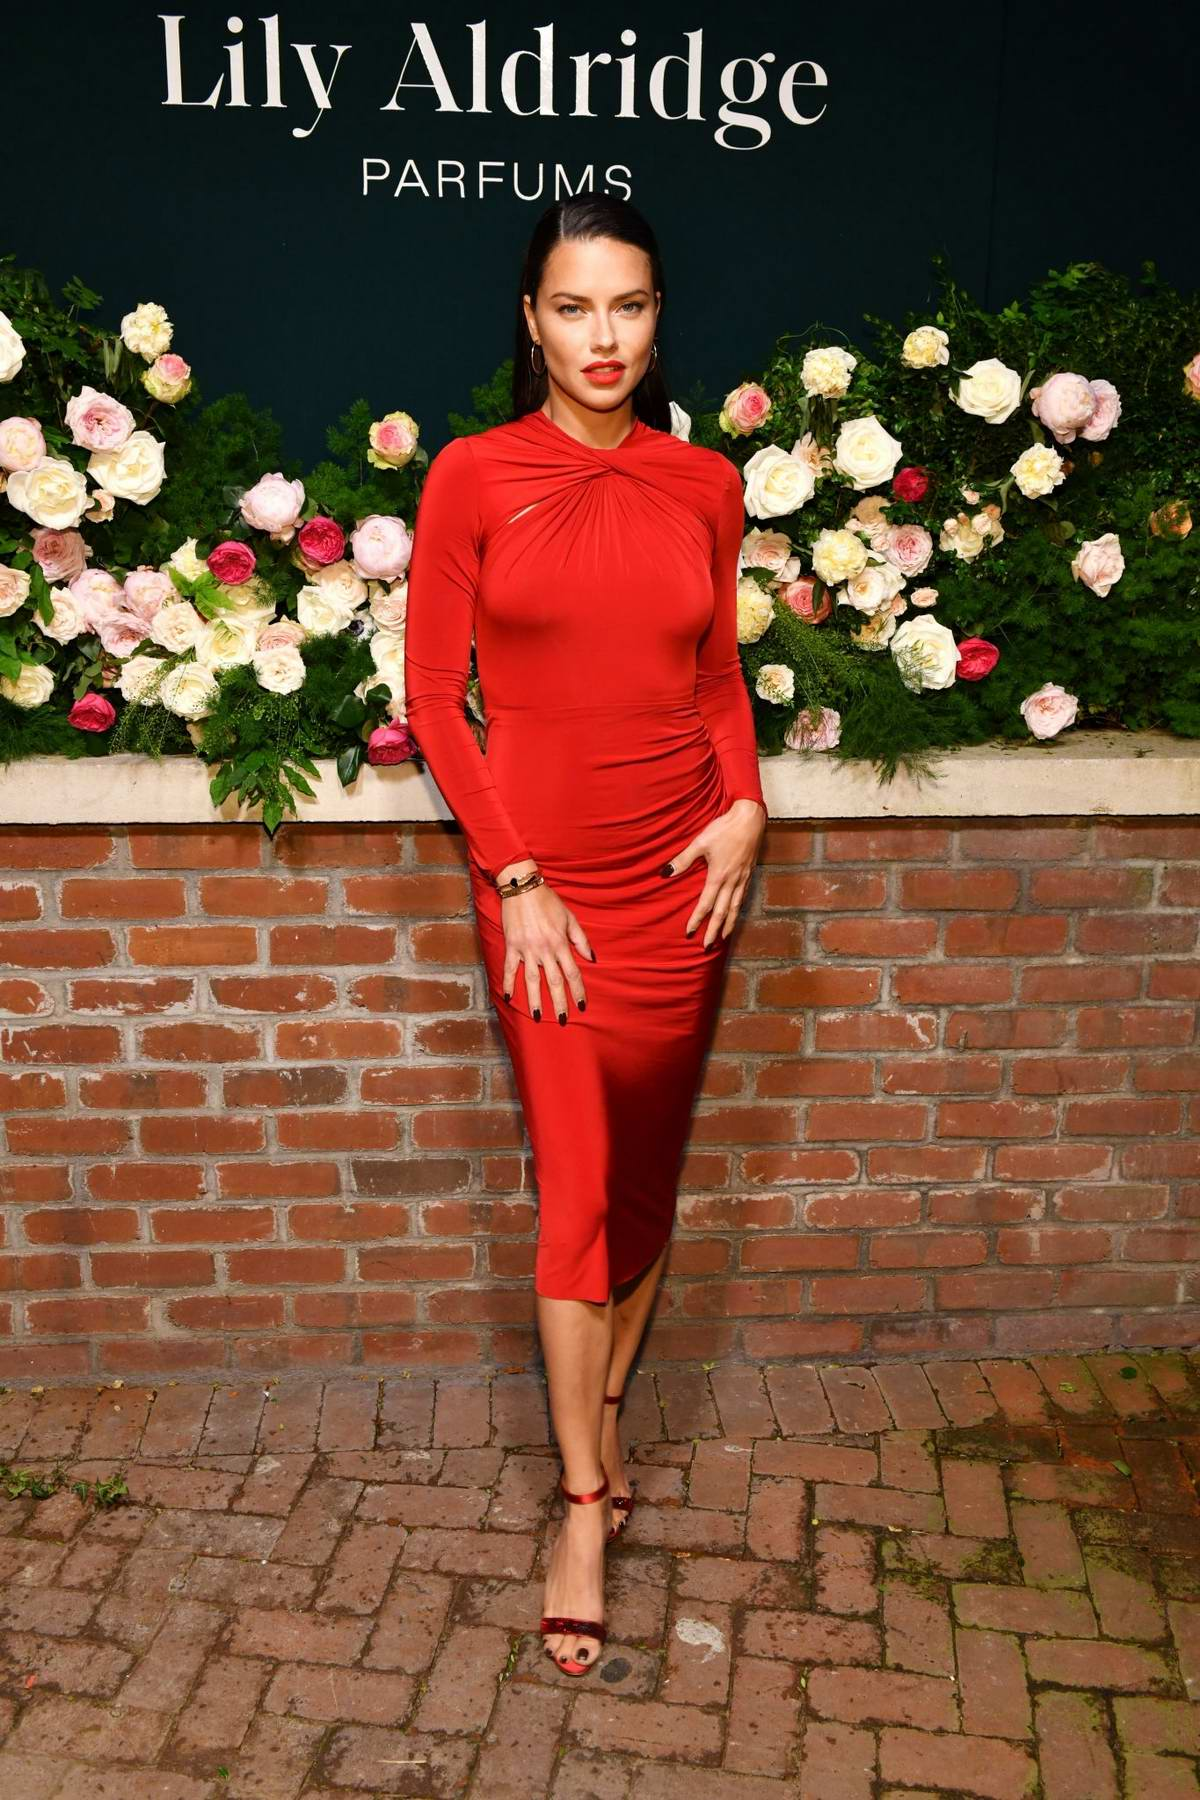 Adriana Lima attends the 'Lily Aldridge Parfums' launch event at The Bowery Terrace in New York City